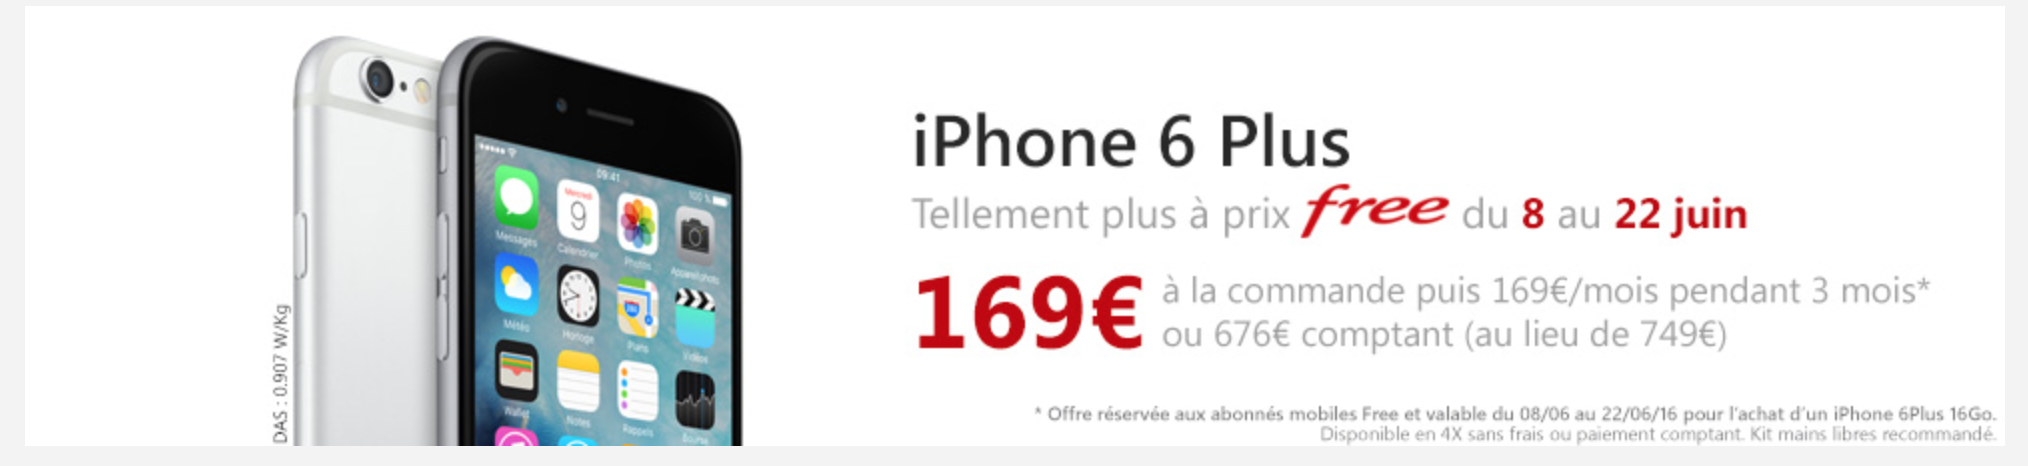 Offre Mobile Bouygues Iphone